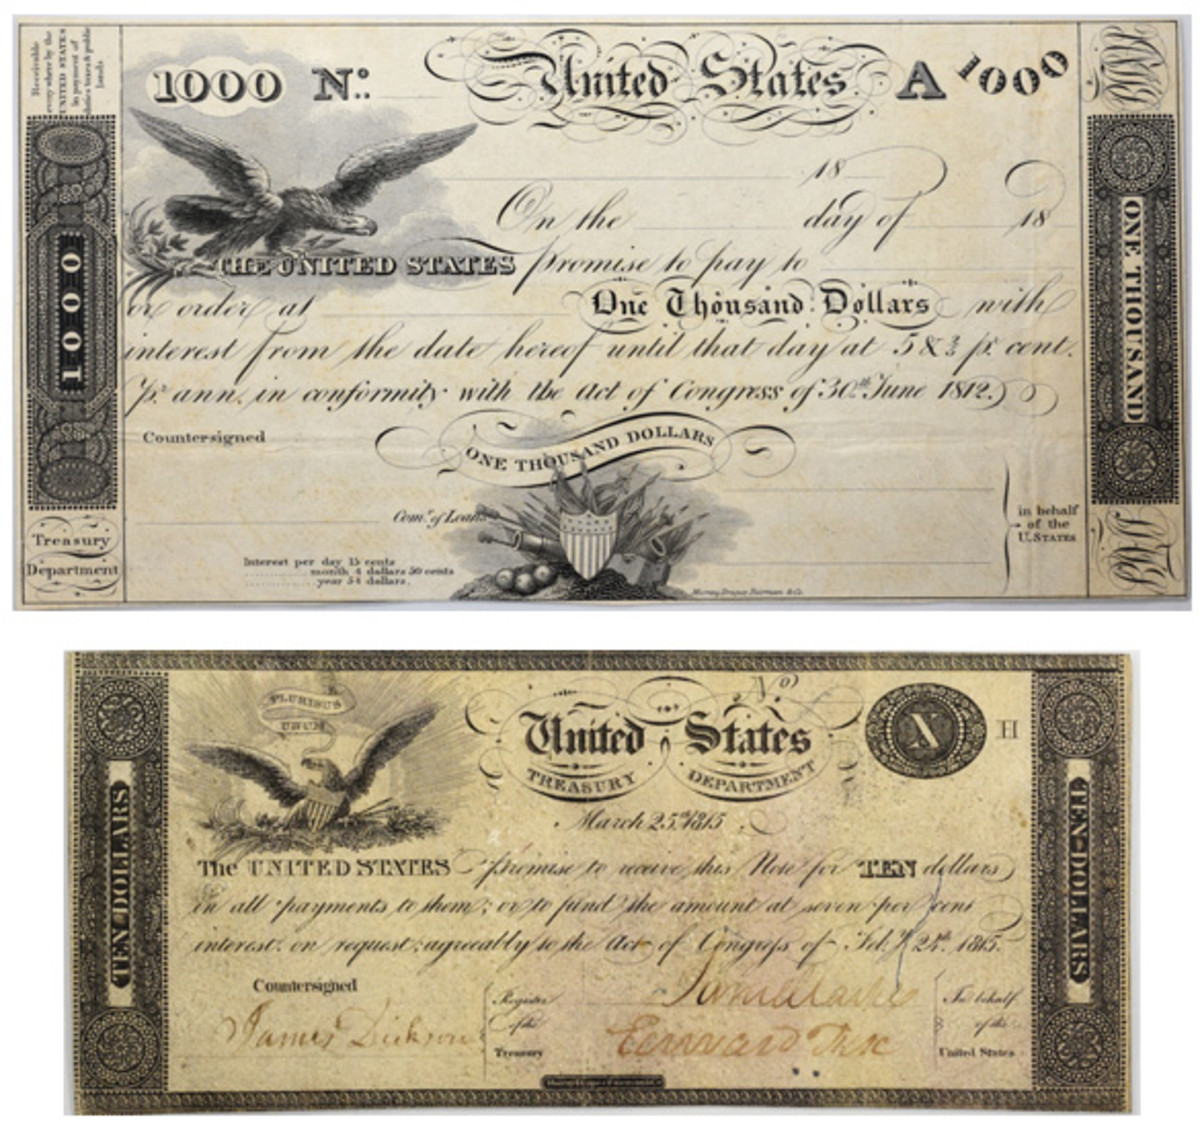 The TN-1 Act of June 30, 1812, $1,000 Treasury Note graded XF40 (top) and the TN-14b Act of February 24, 1815, $10 Fully Signed War of 1812 Treasury Note graded XF40 (bottom) from the Joel R. Anderson collection will be offered at the annual ANA National Money Show auction on March 29.